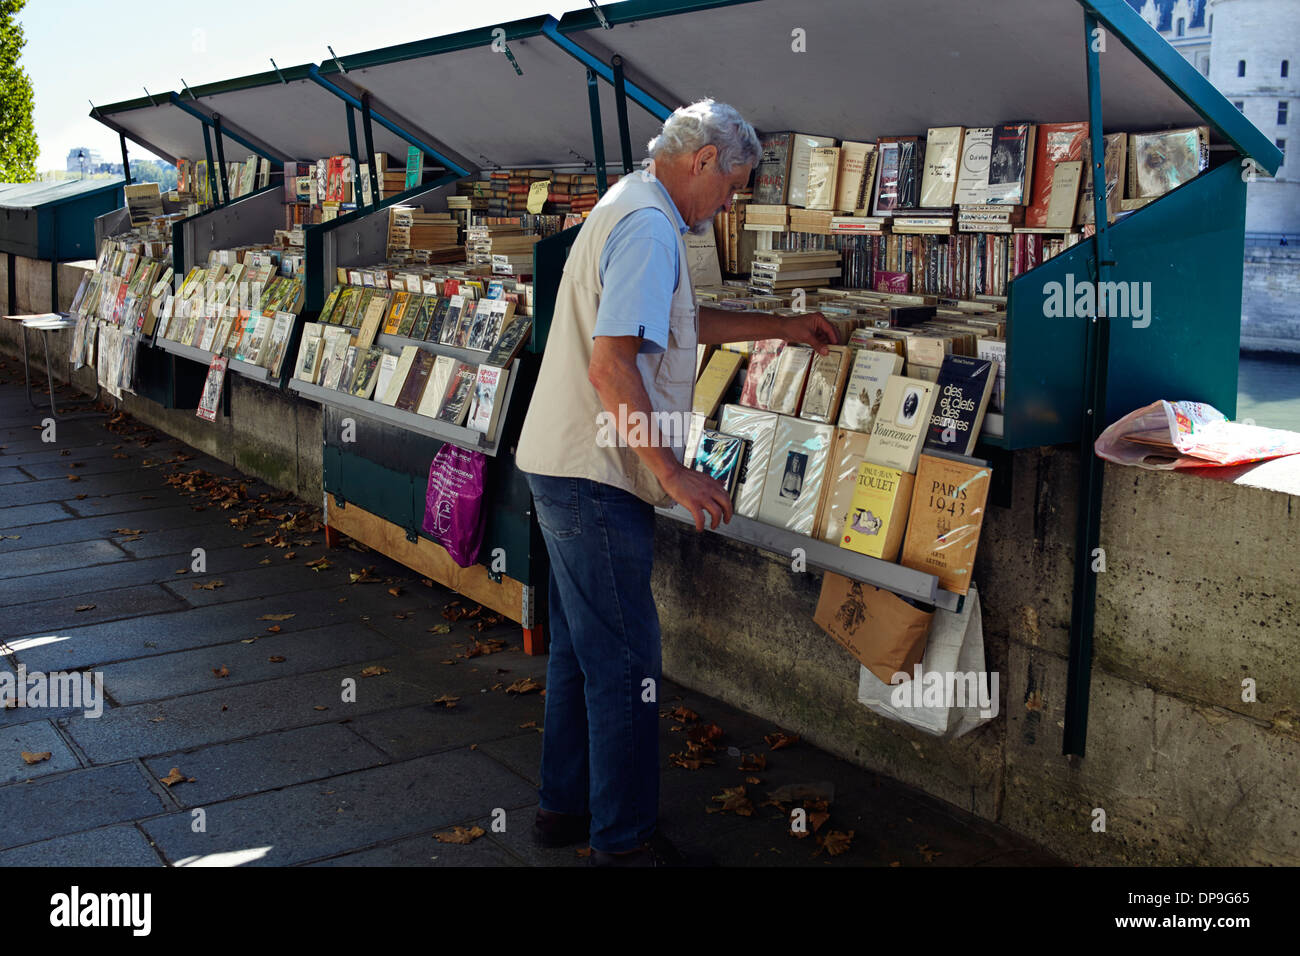 Bookseller on bank of river Seine, Paris - Stock Image